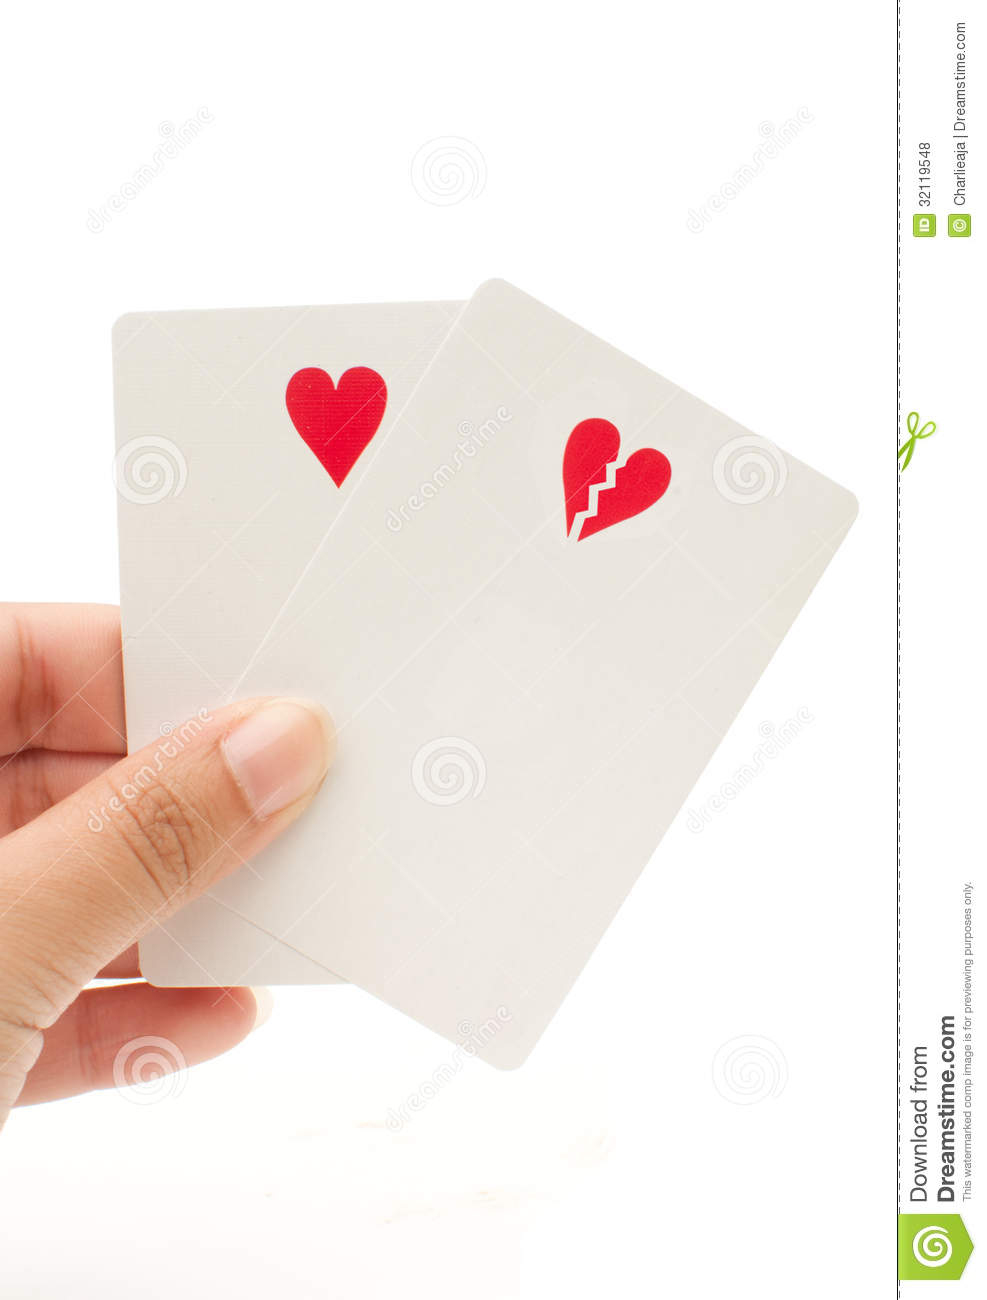 Heart and broken heart shaped symbol stock photo image of heart and broken heart shaped symbol biocorpaavc Images